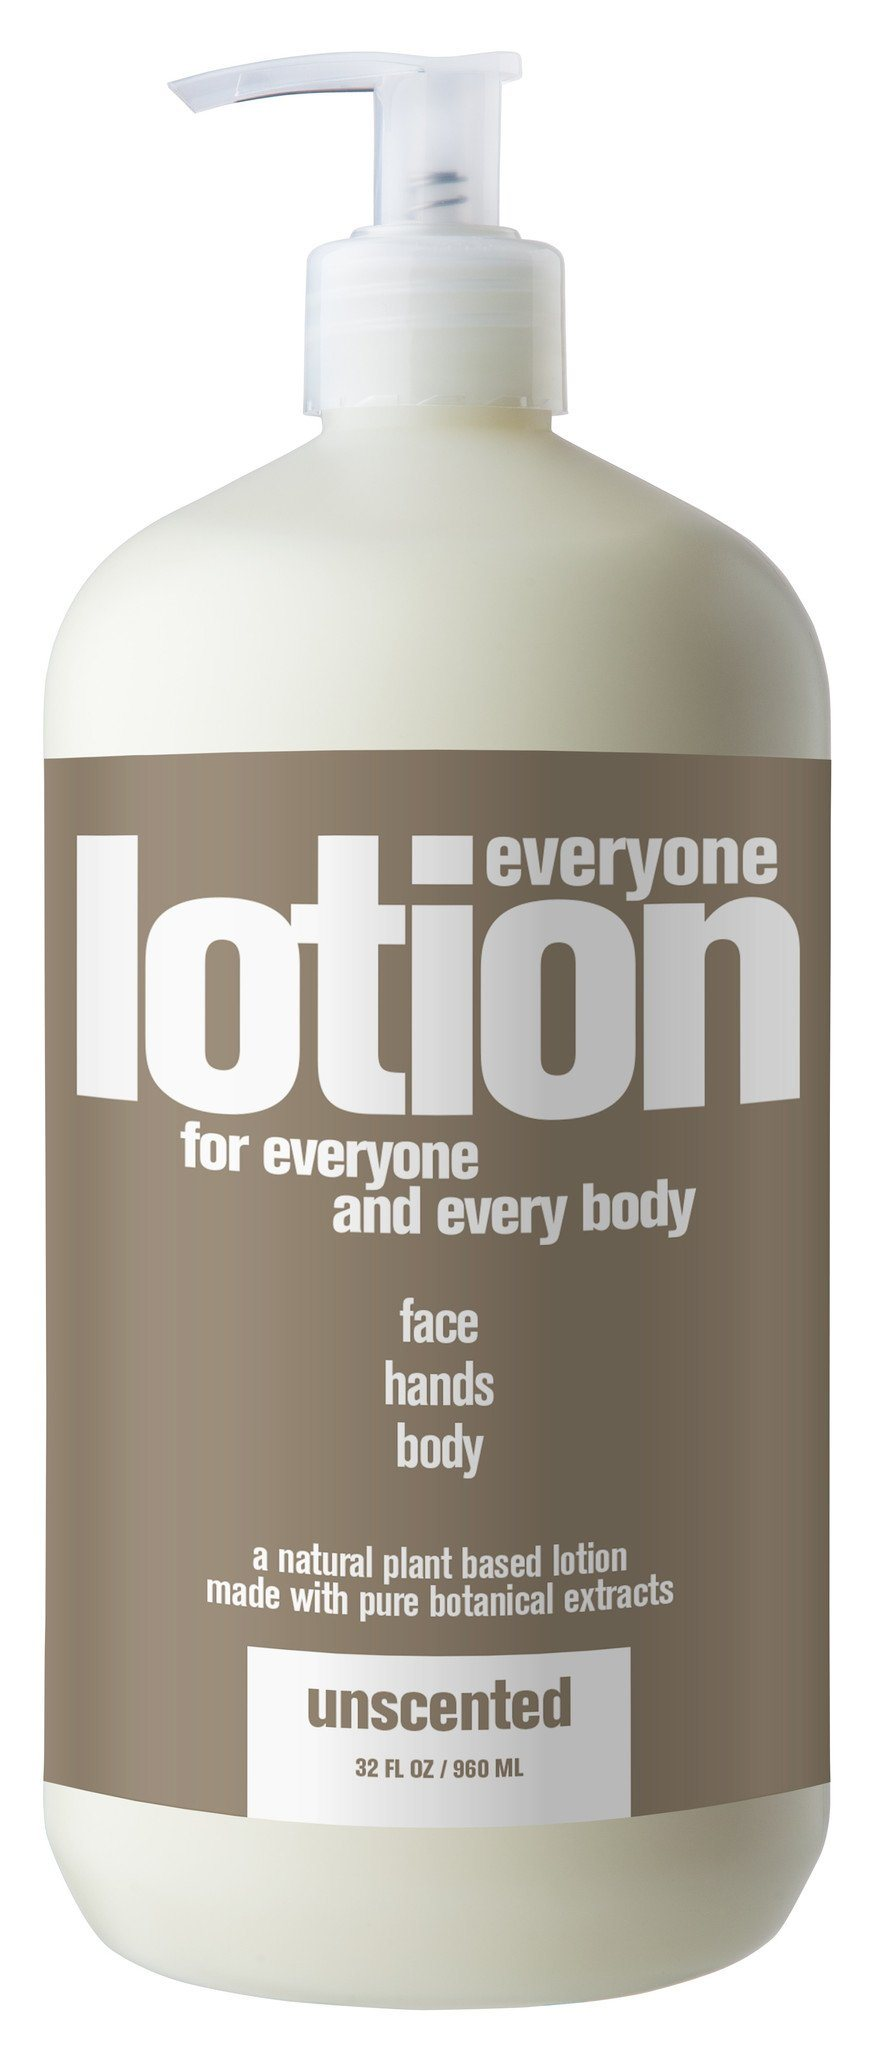 Beauty & Skin Care - EO - Unscented Hand & Face Lotion - 946ml